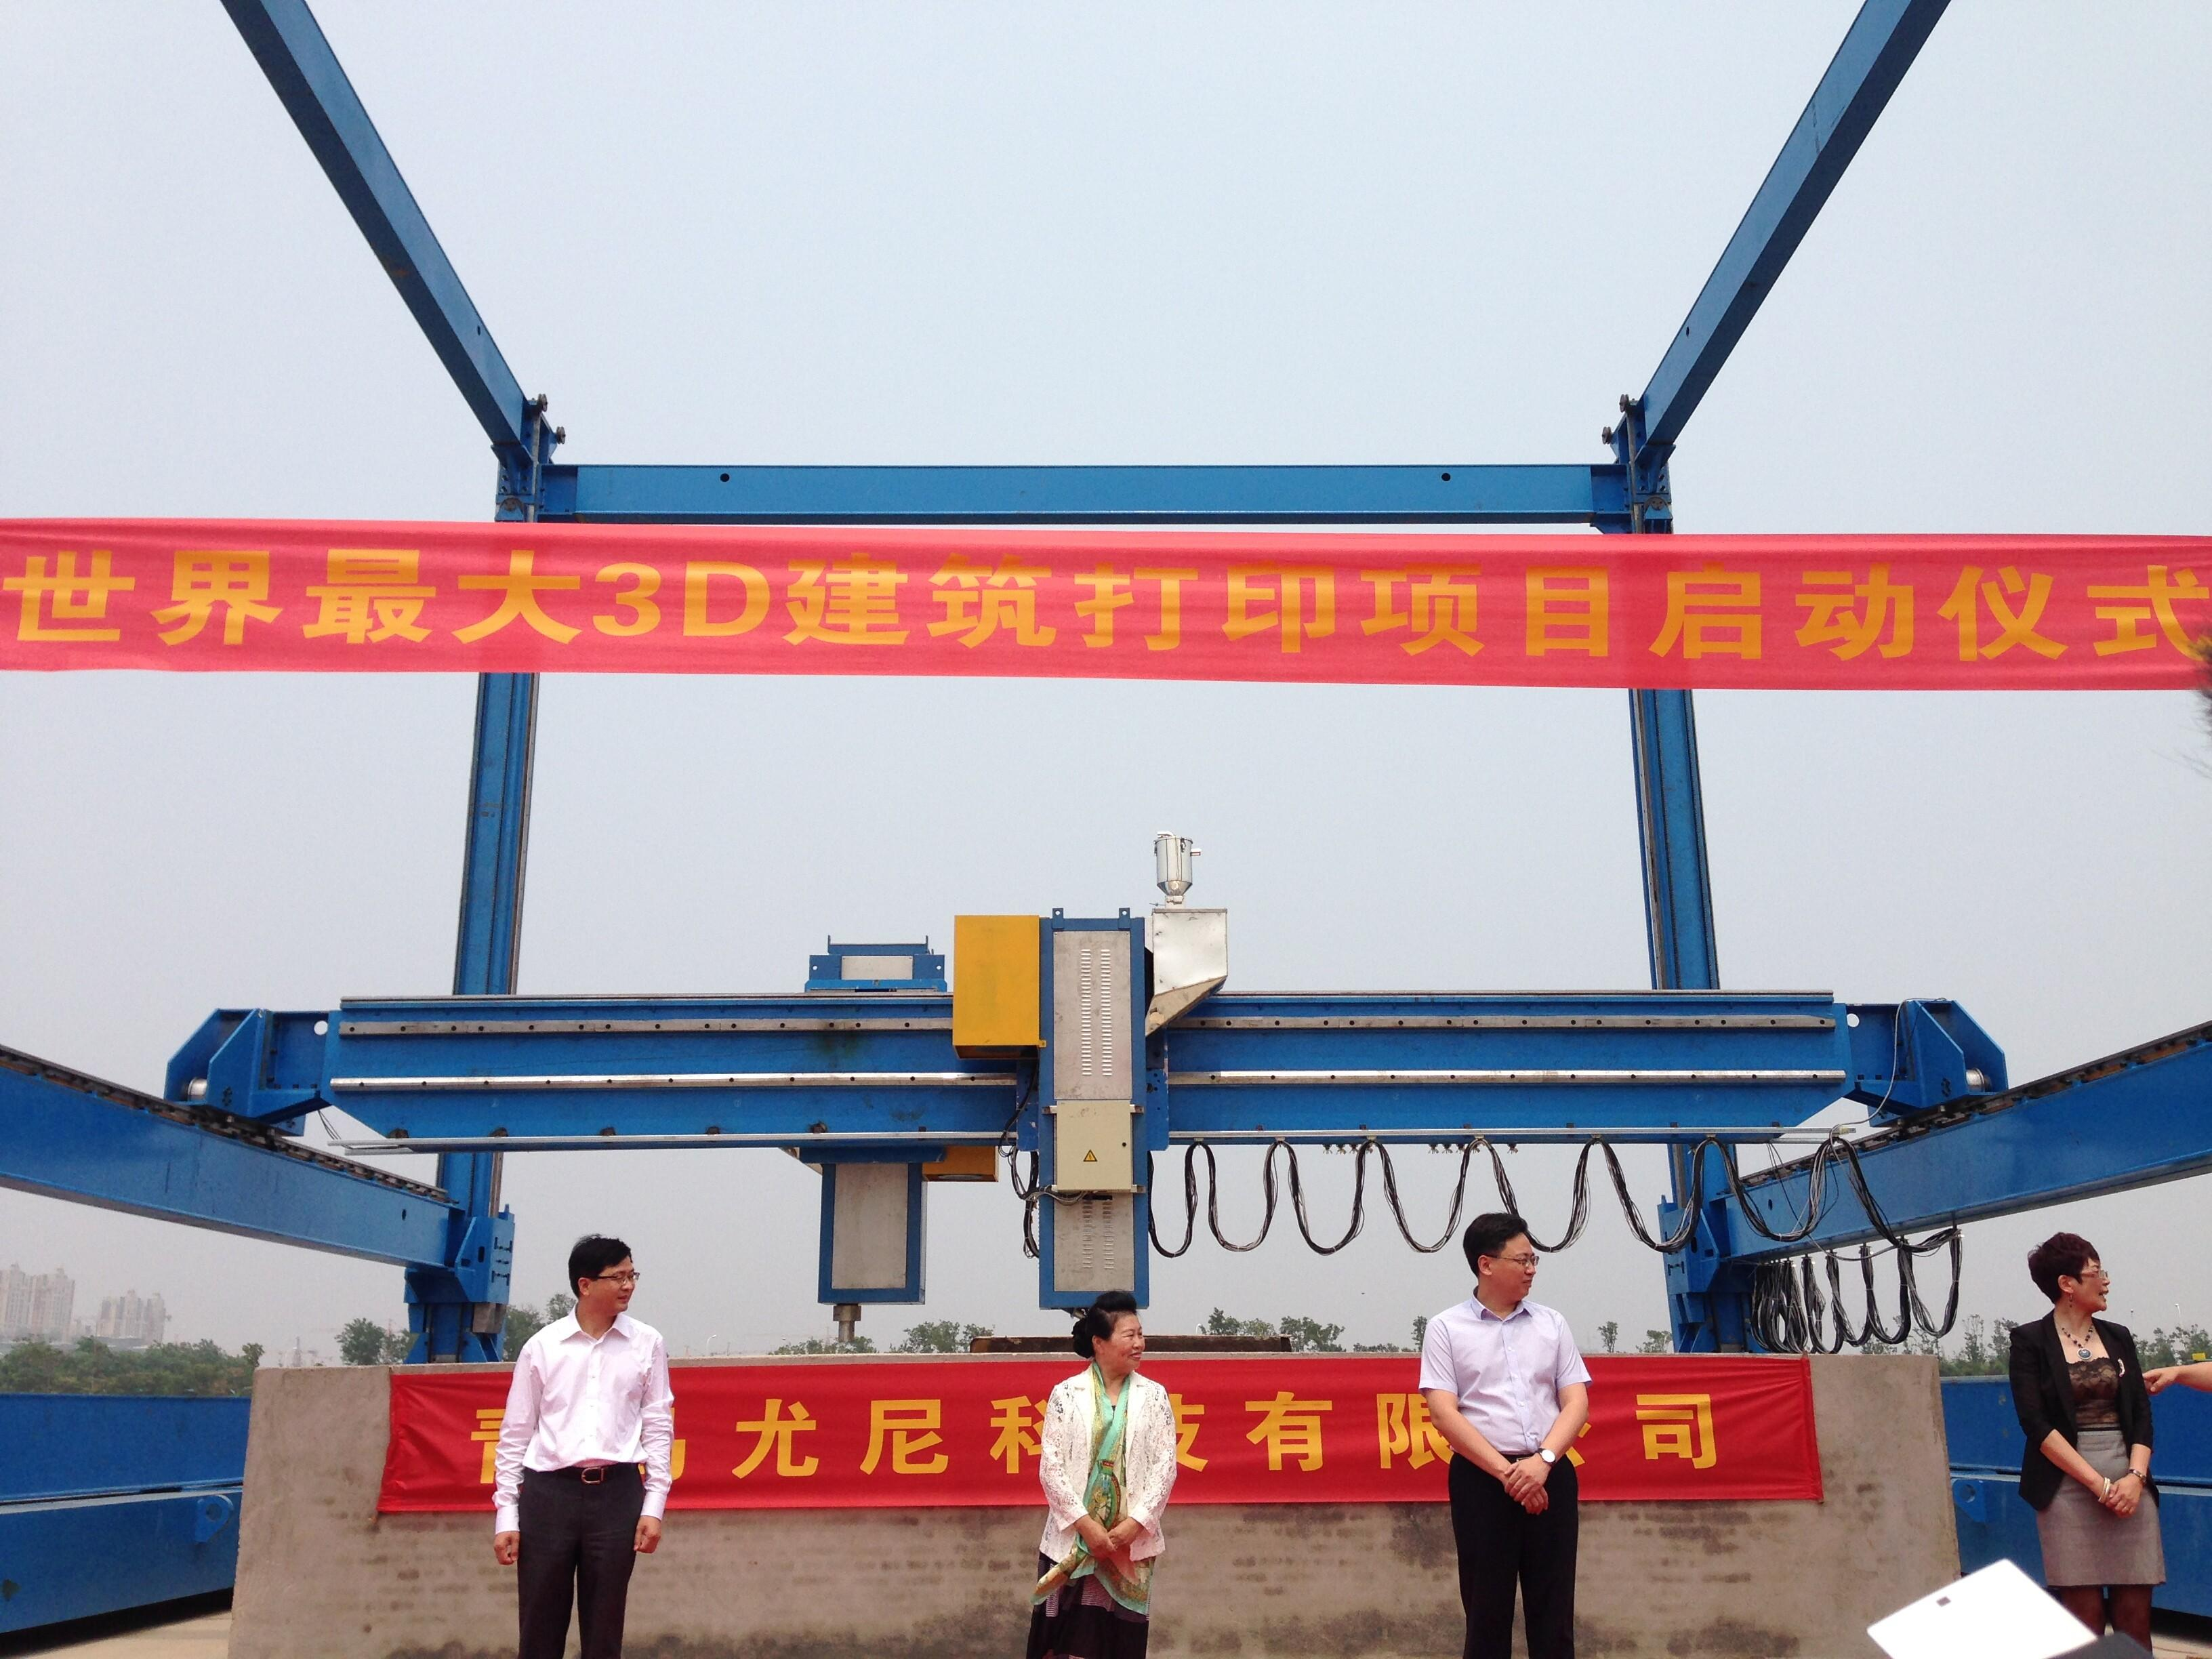 Chinese Create Huge 40×40 Foot Graphene / Fiberglass 3D Printer – Planning on Constructing Homes